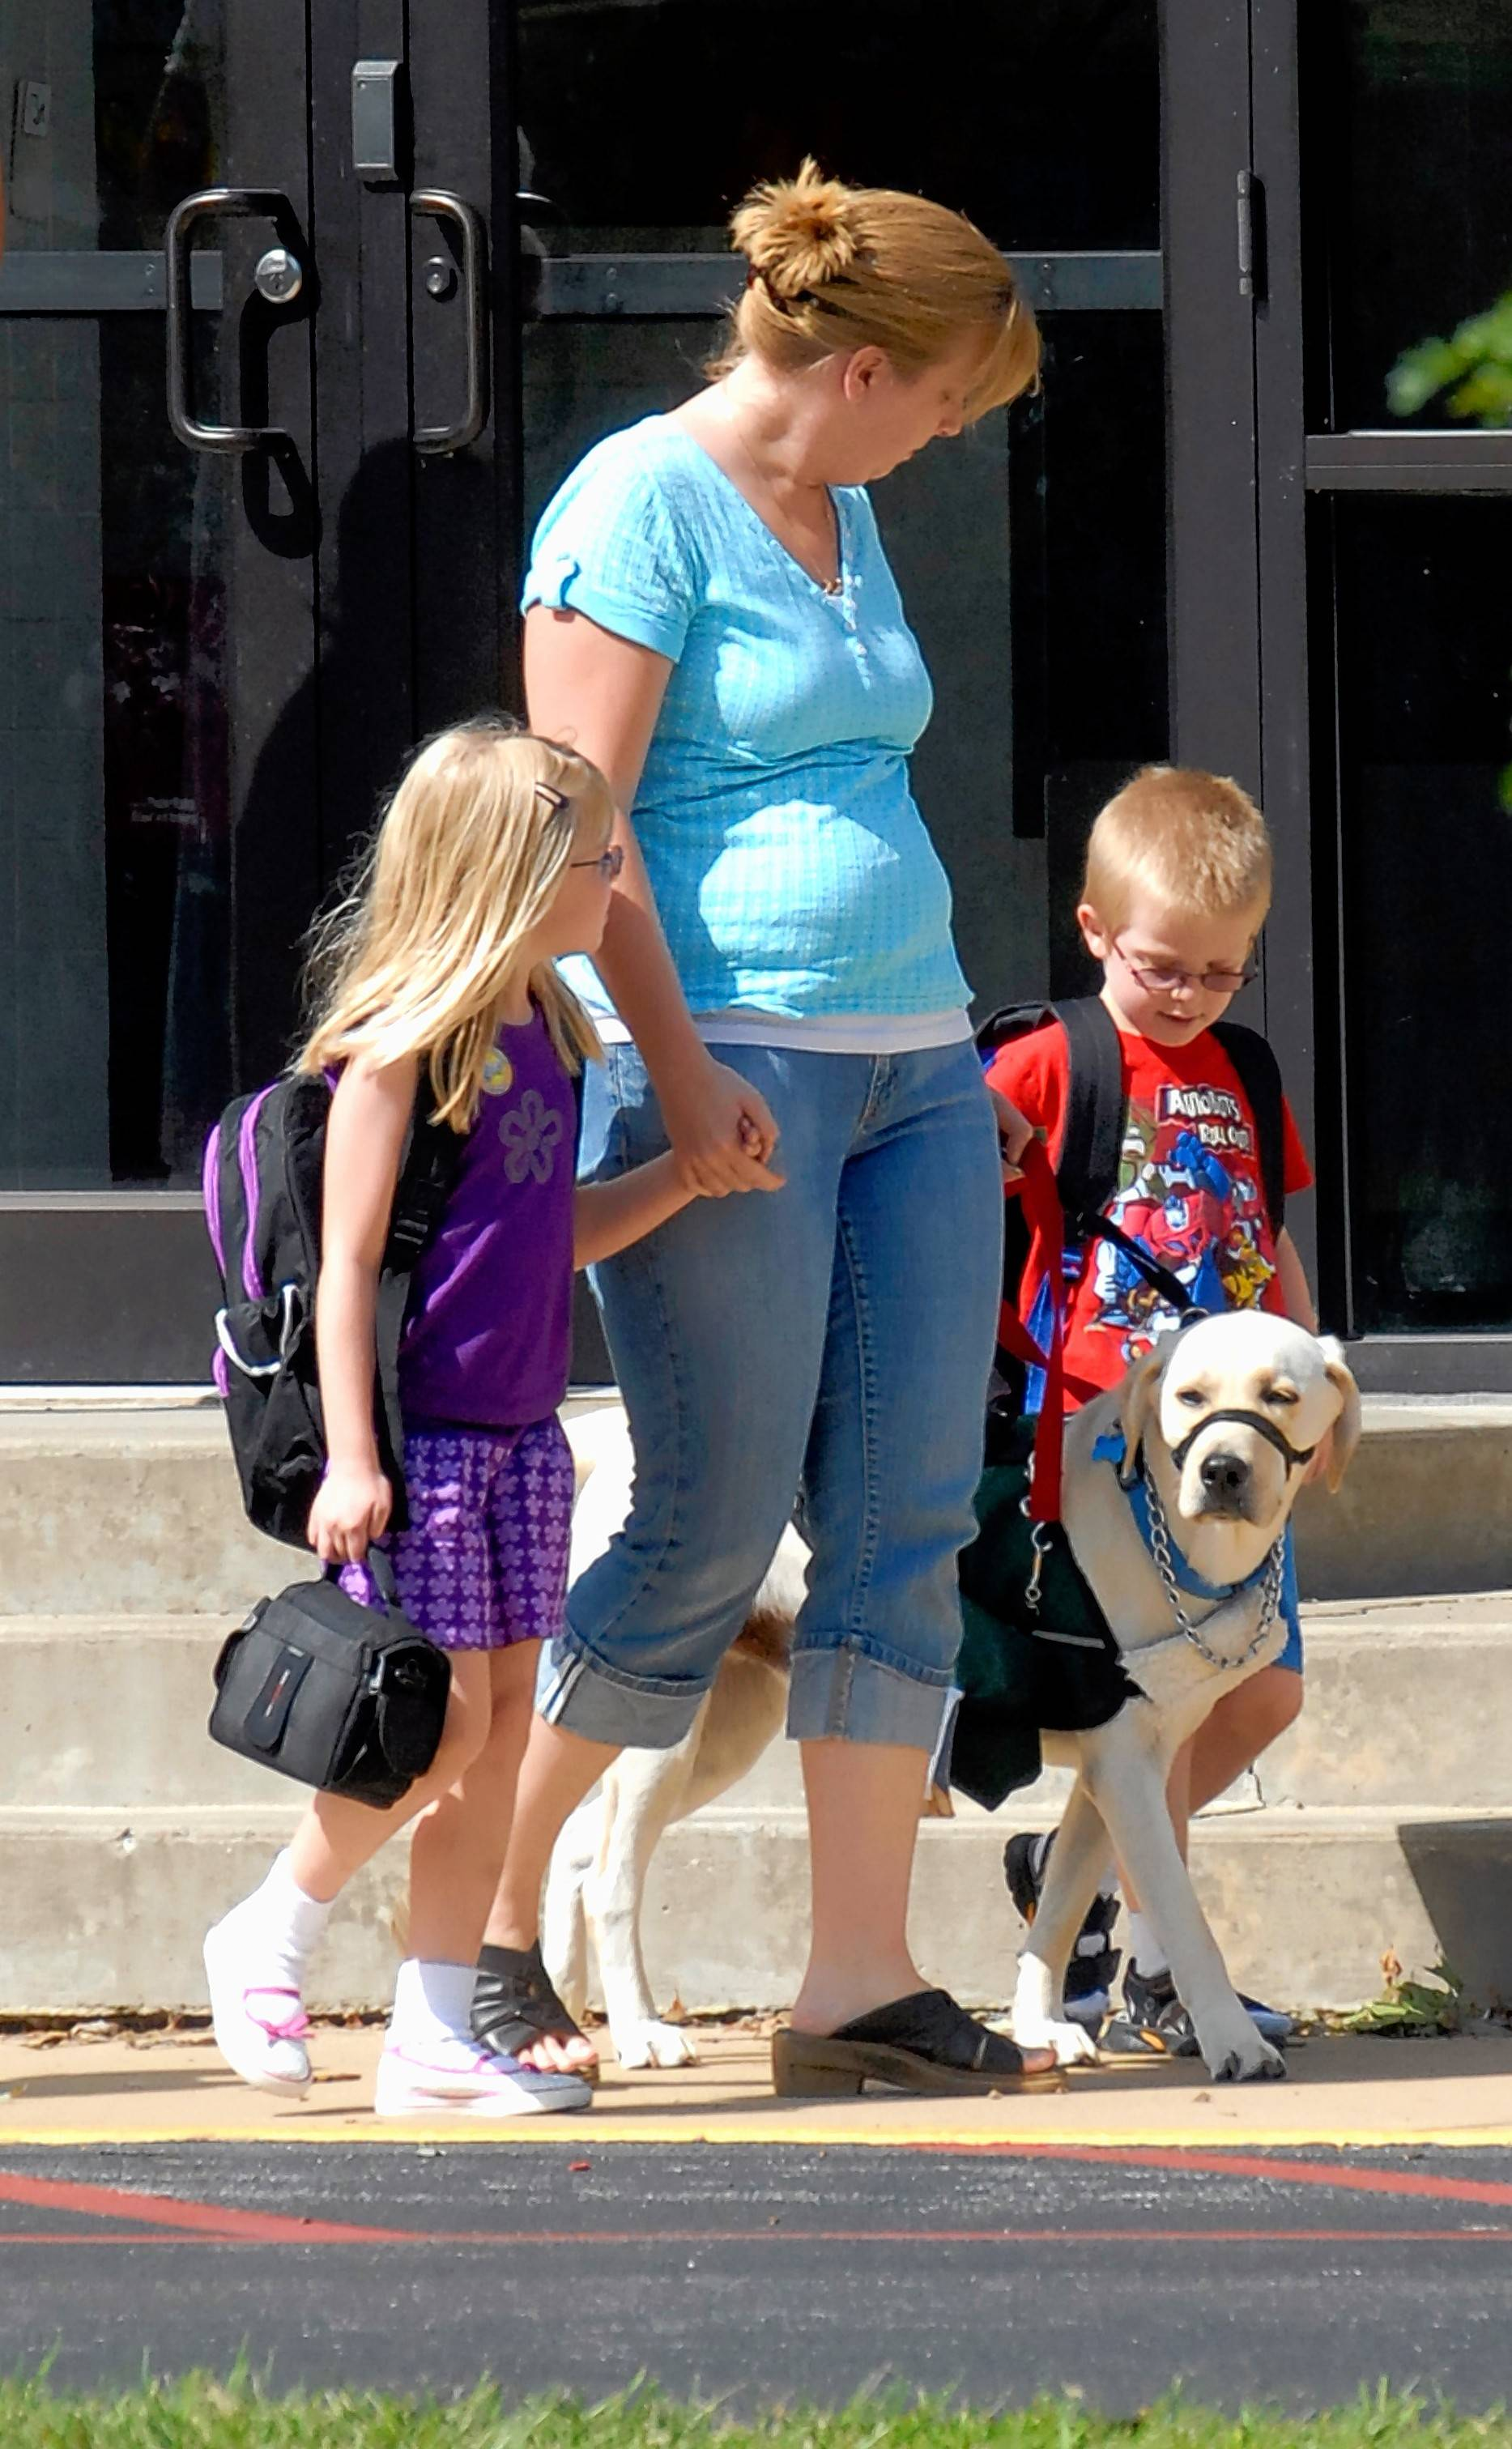 In 2009, this family in central Illinois successfully sued a school district to get permission for their 6-year-old boy to bring his autism service dog to school. Once reserved for helping sight-impaired people navigate, animals now can provide a wide range of services, including sensing blood-sugar levels, calming people with post-traumatic stress disorder, reminding people with mental illnesses to take medication and alerting owners of imminent seizures.